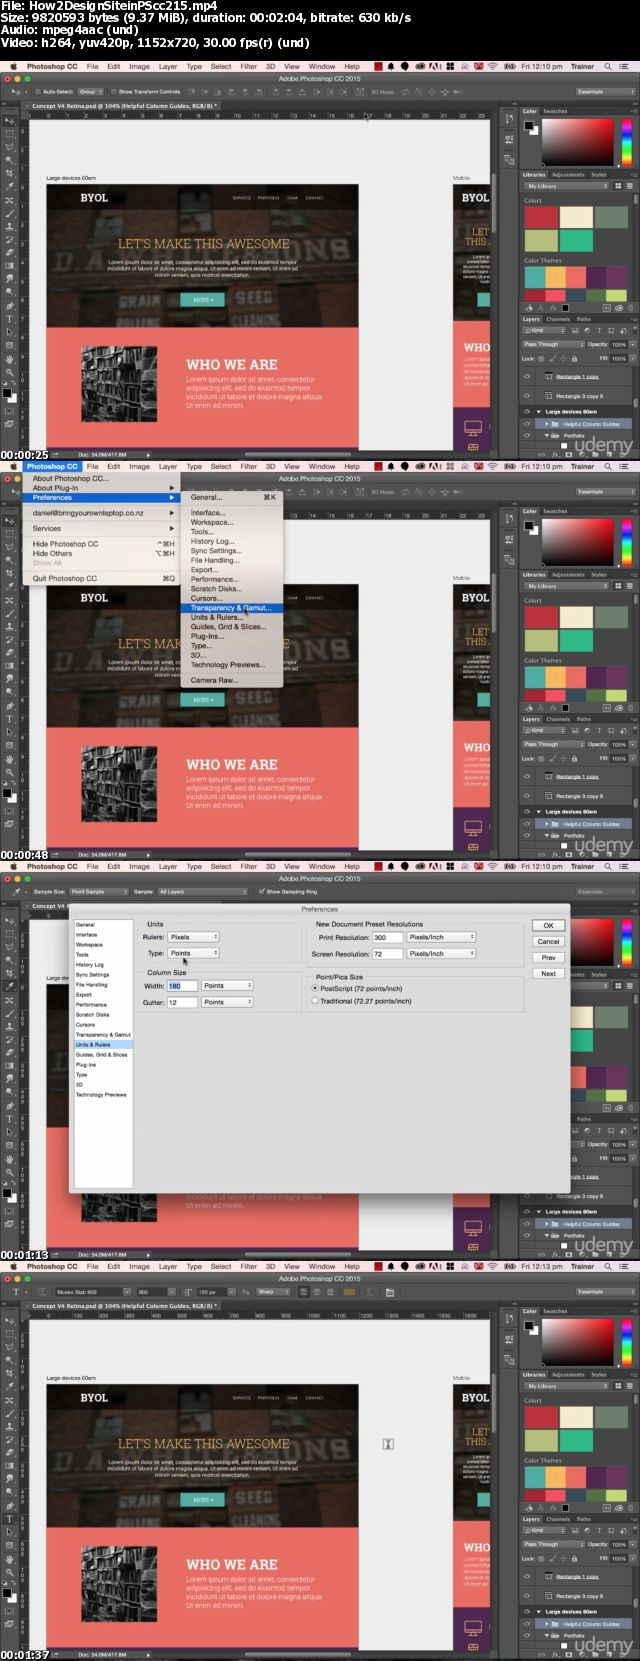 Download How to Design a Website in Photoshop (Using Photoshop CC